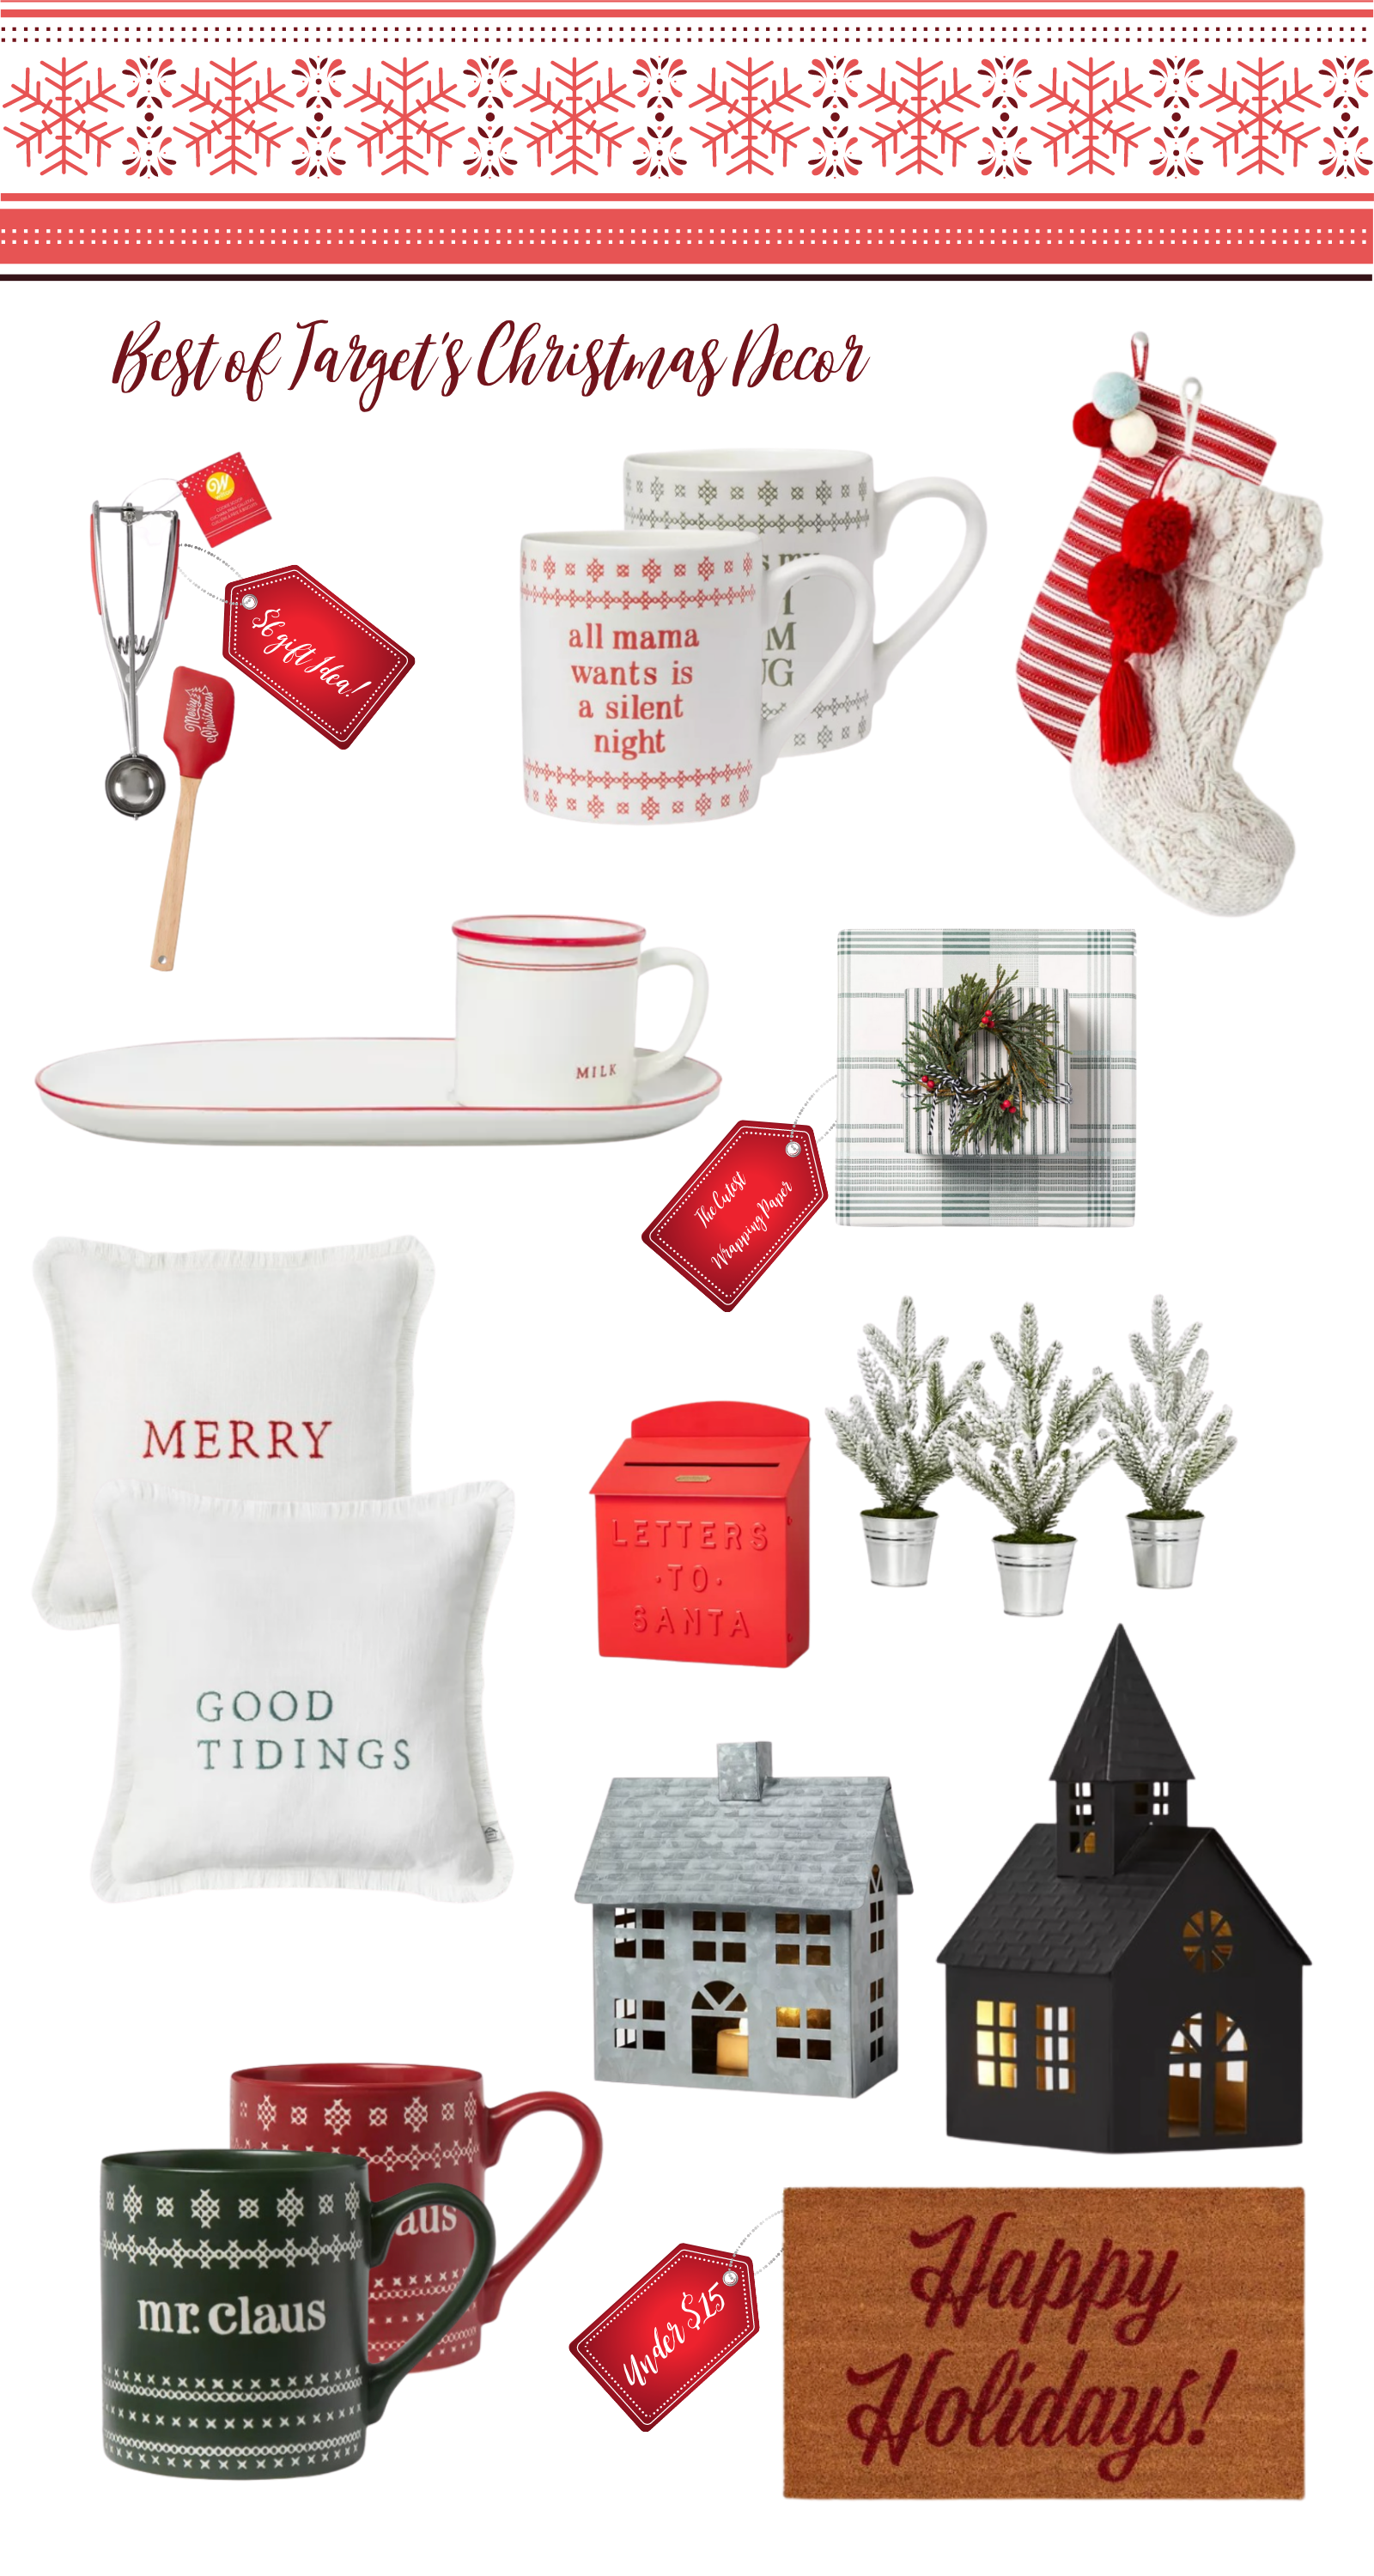 Ready for Target Christmas 2020 decor? From mini Christmas trees to signs and themed decor, Target has it all this year!